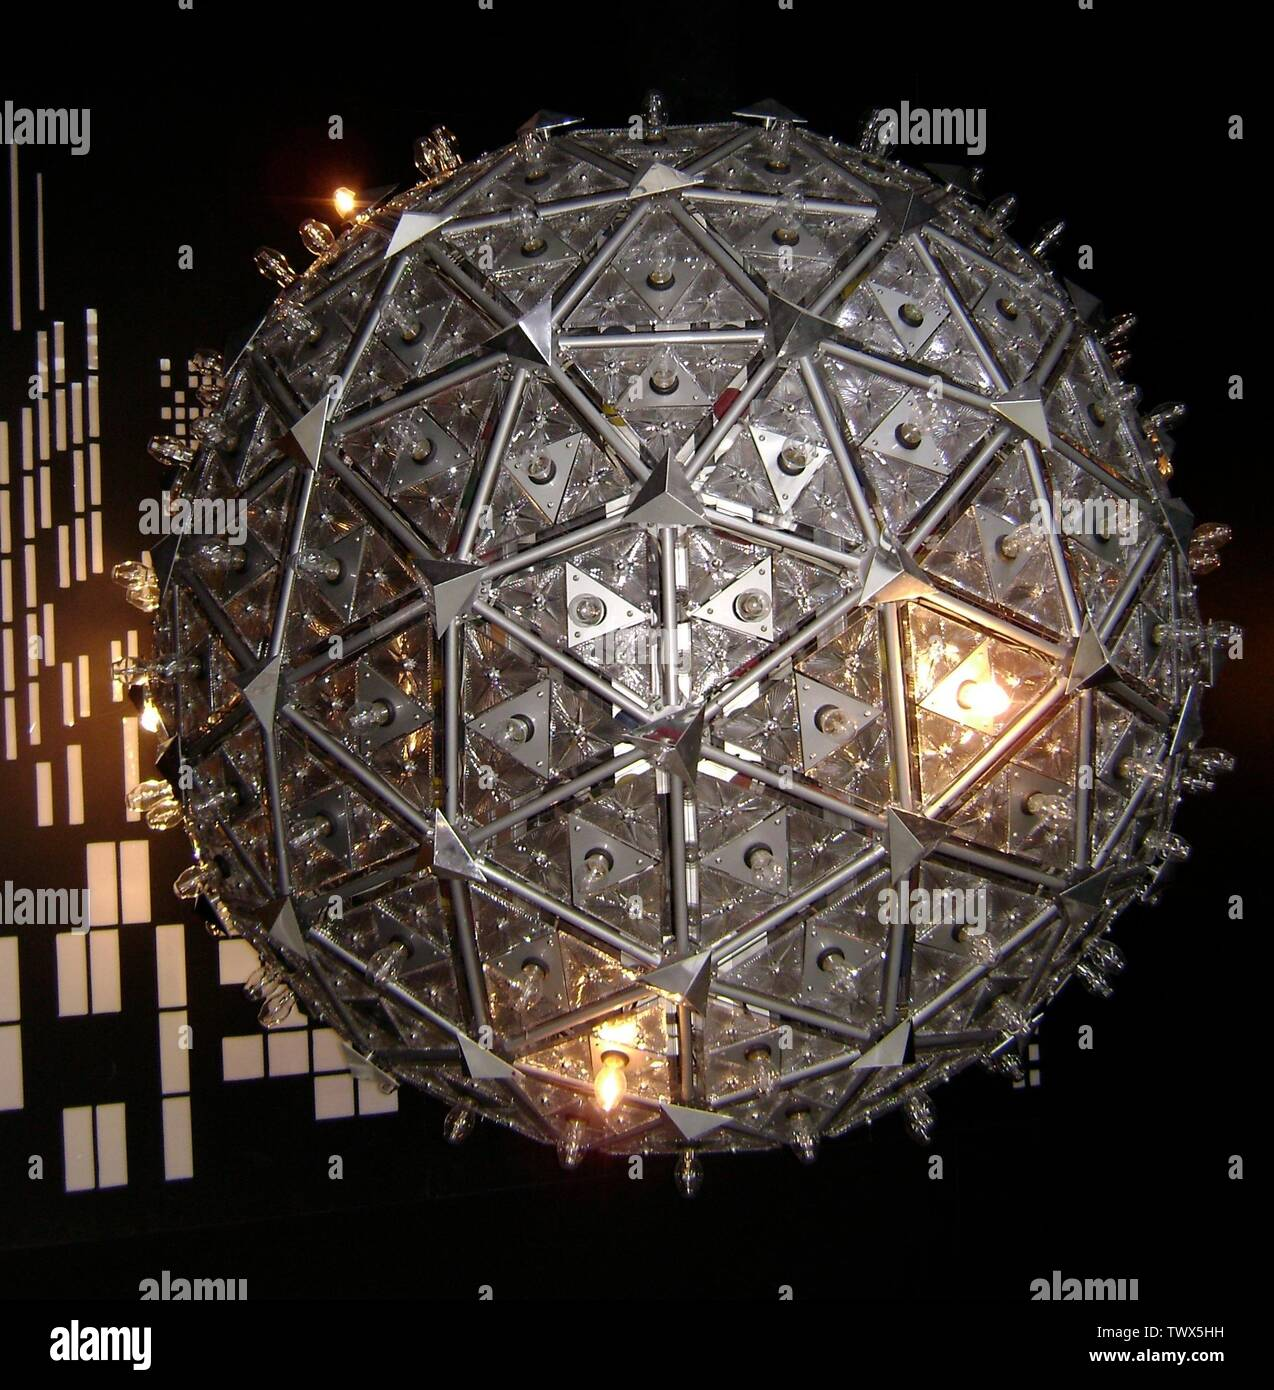 'English: The Times Square Ball designed for the new millennium in 2000, on display at the Waterford Crystal Factory.; 2 October 2008; Own work; Hunter Kahn (talk) 02:57, 8 October 2008 (UTC); ' - Stock Image